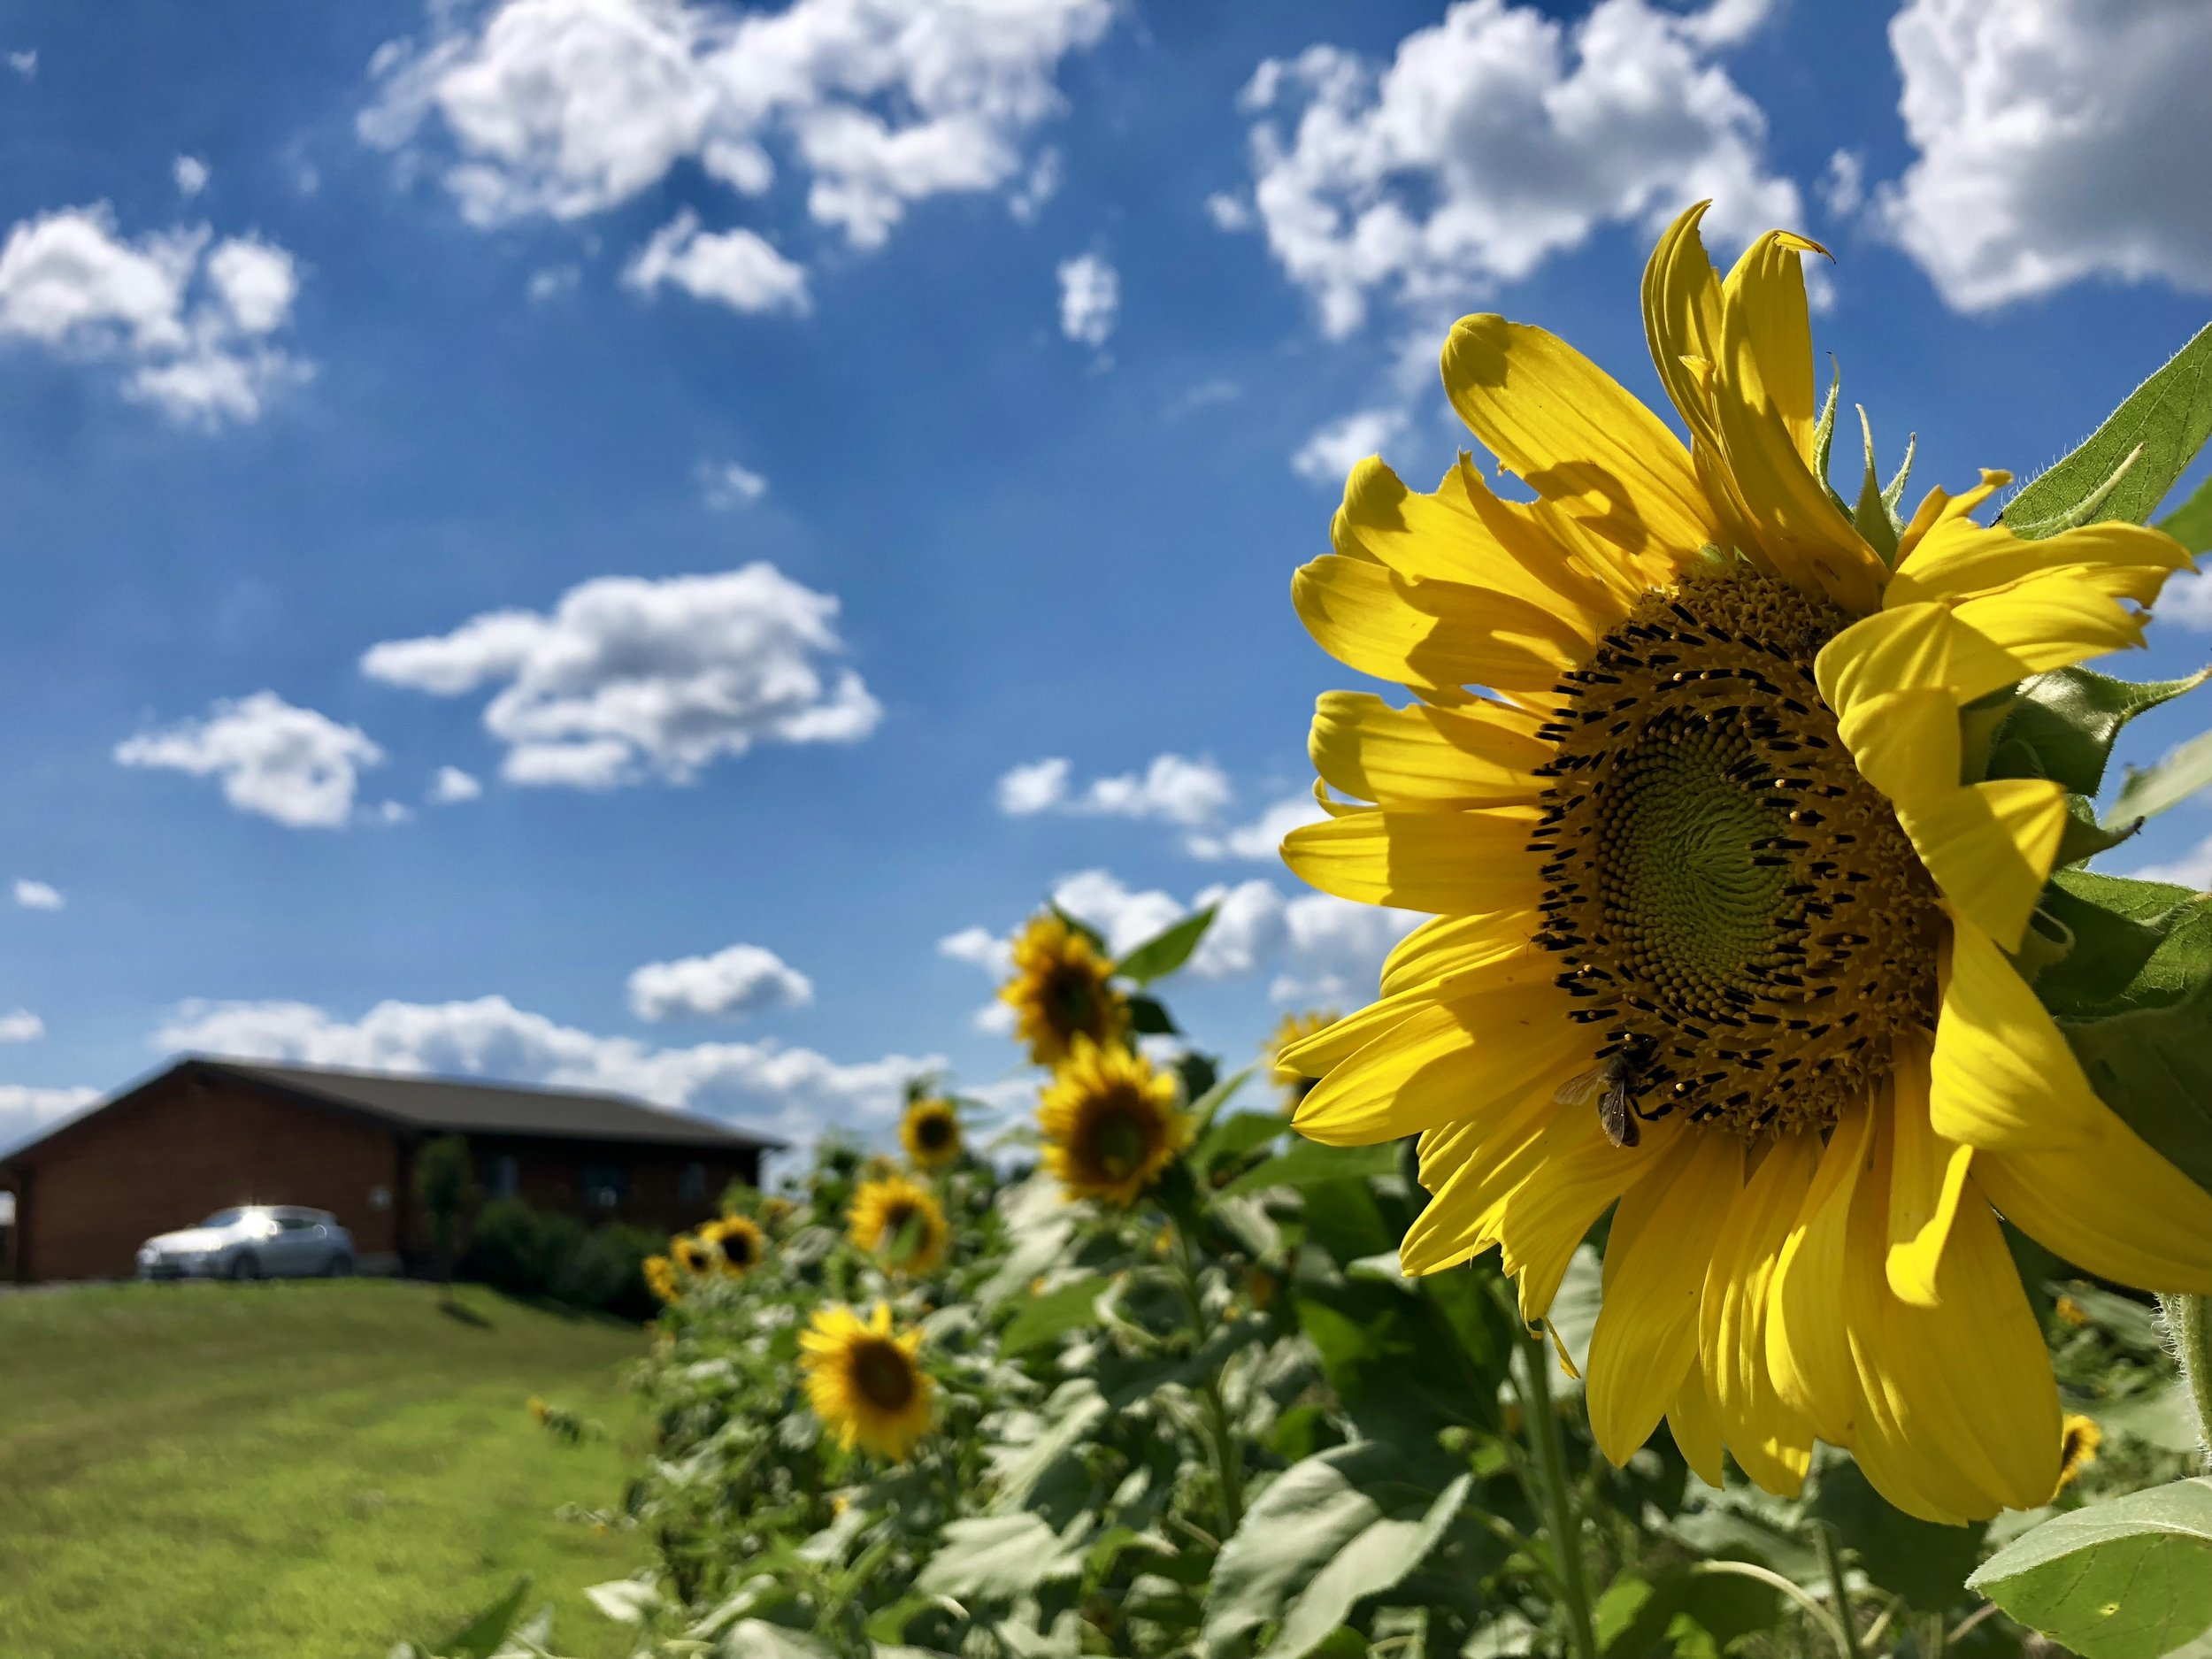 Tours + Sunflowers - A peek behind the scenes with a gorgeous field of sunflowers to boot